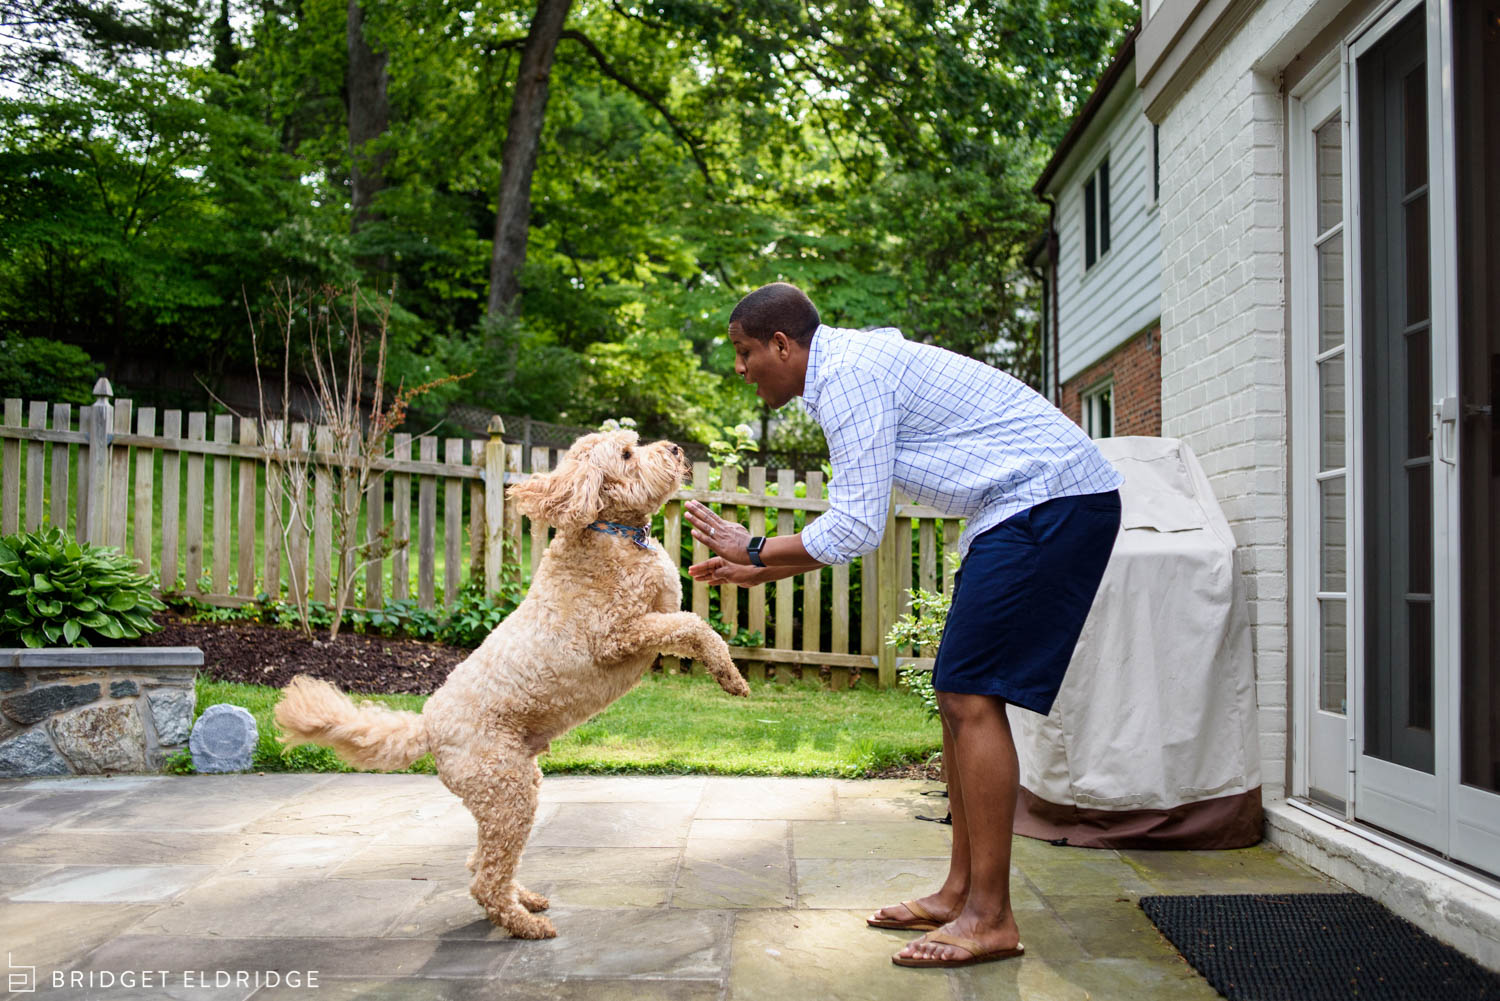 dad gives his dog a high five in exchange for a treat